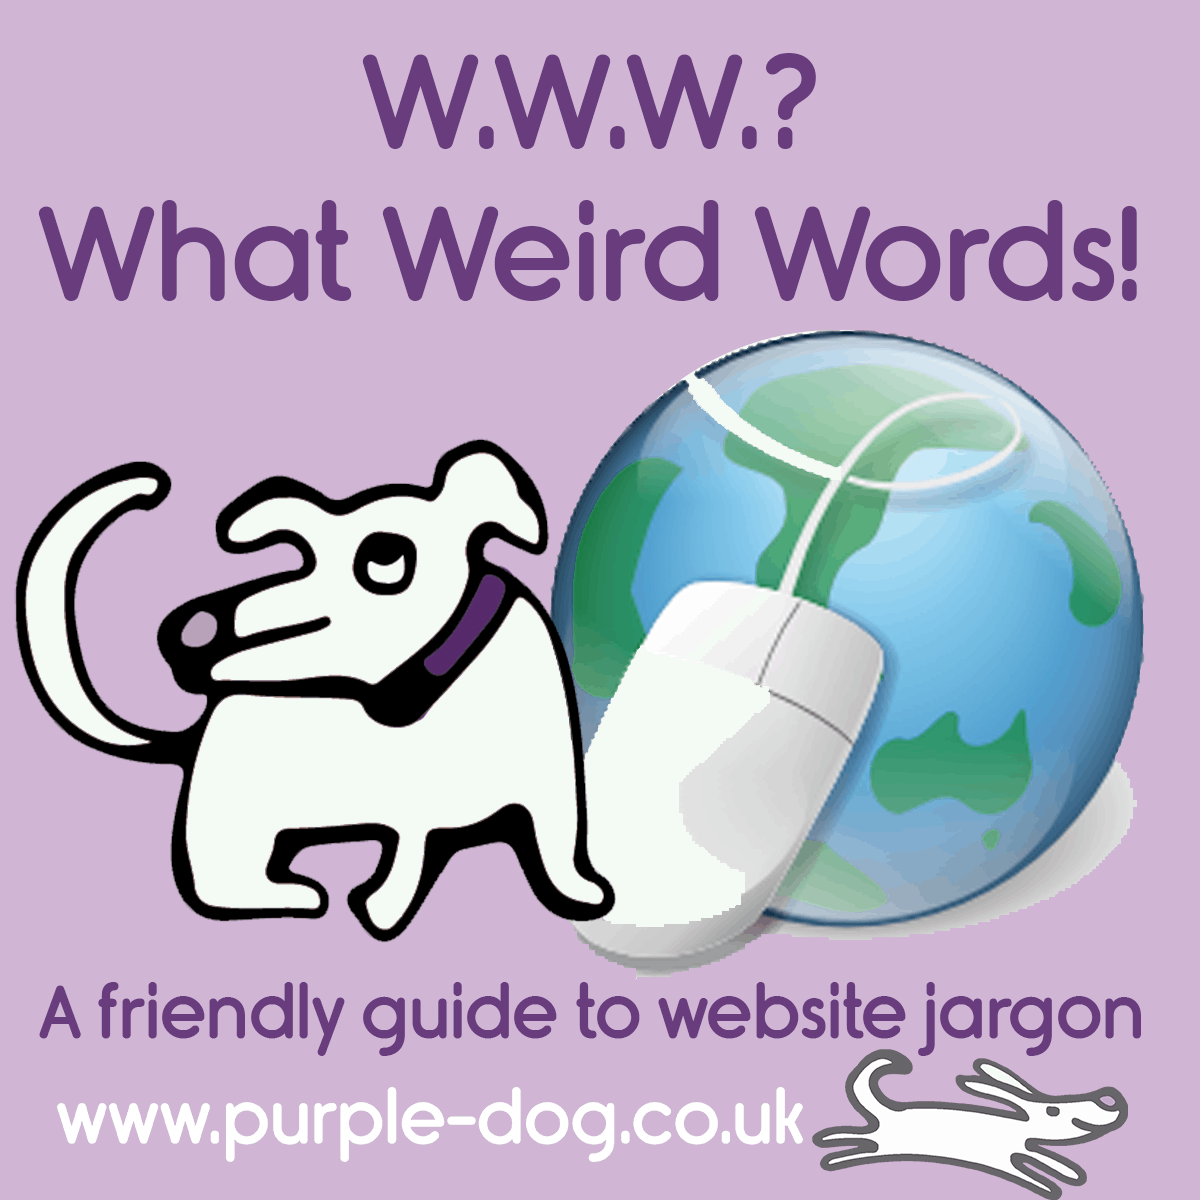 A friendly guide to website jargon